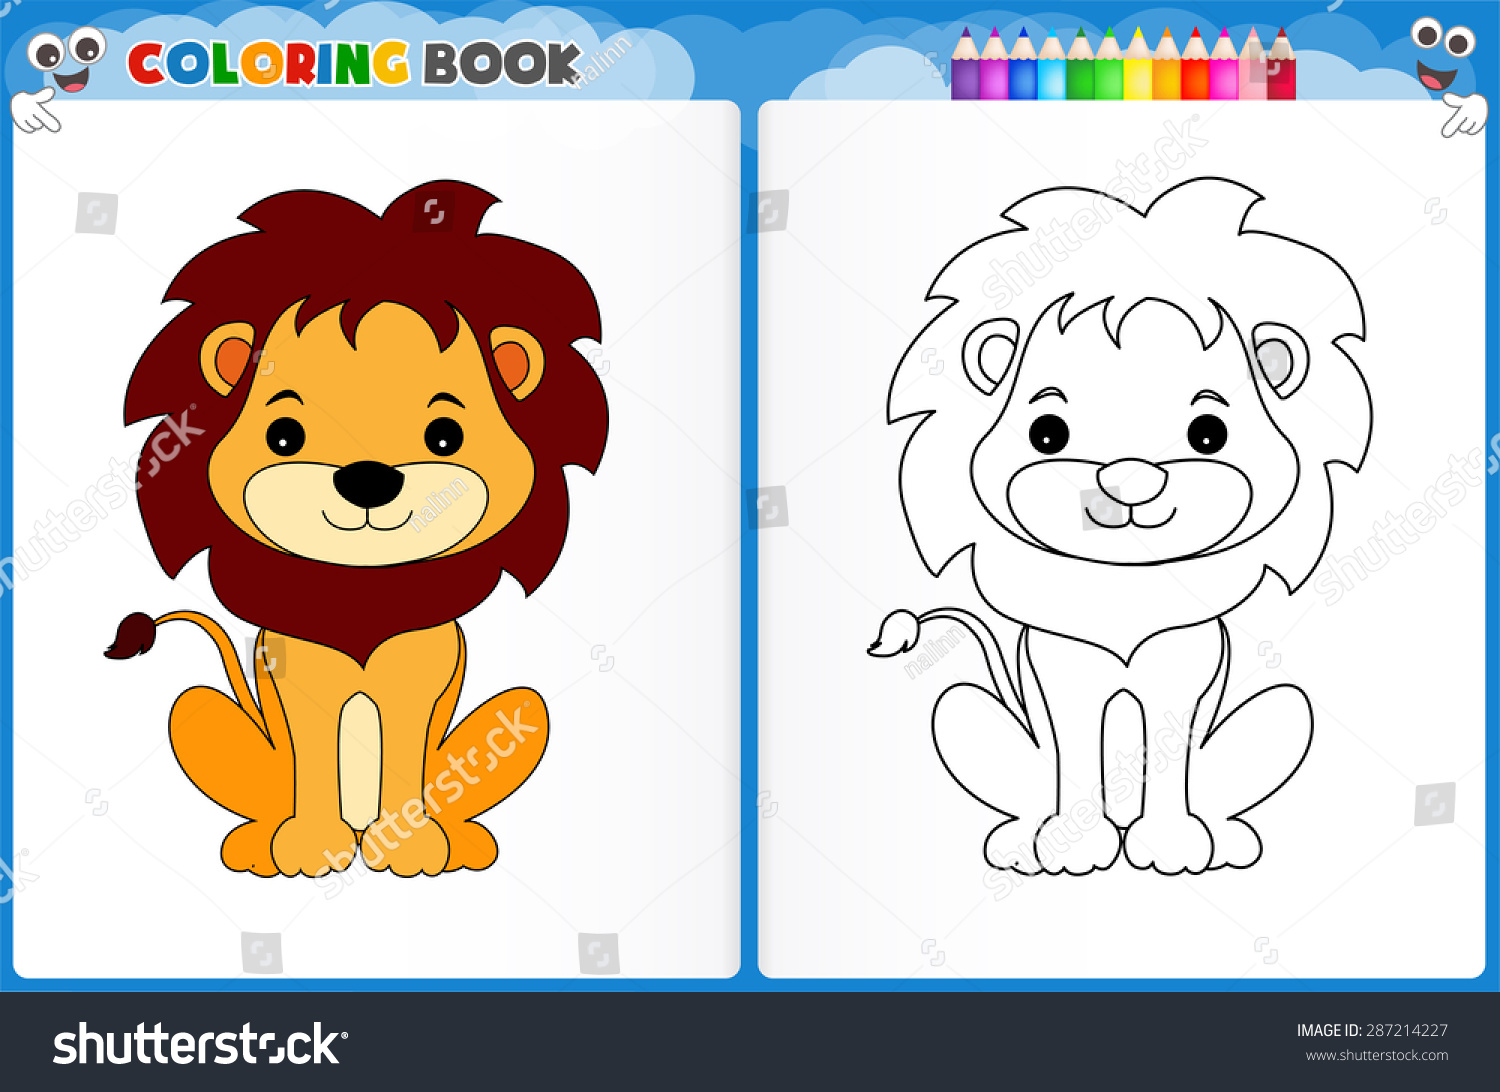 Coloring Page Cute Lion Colorful Sample Stock Vector